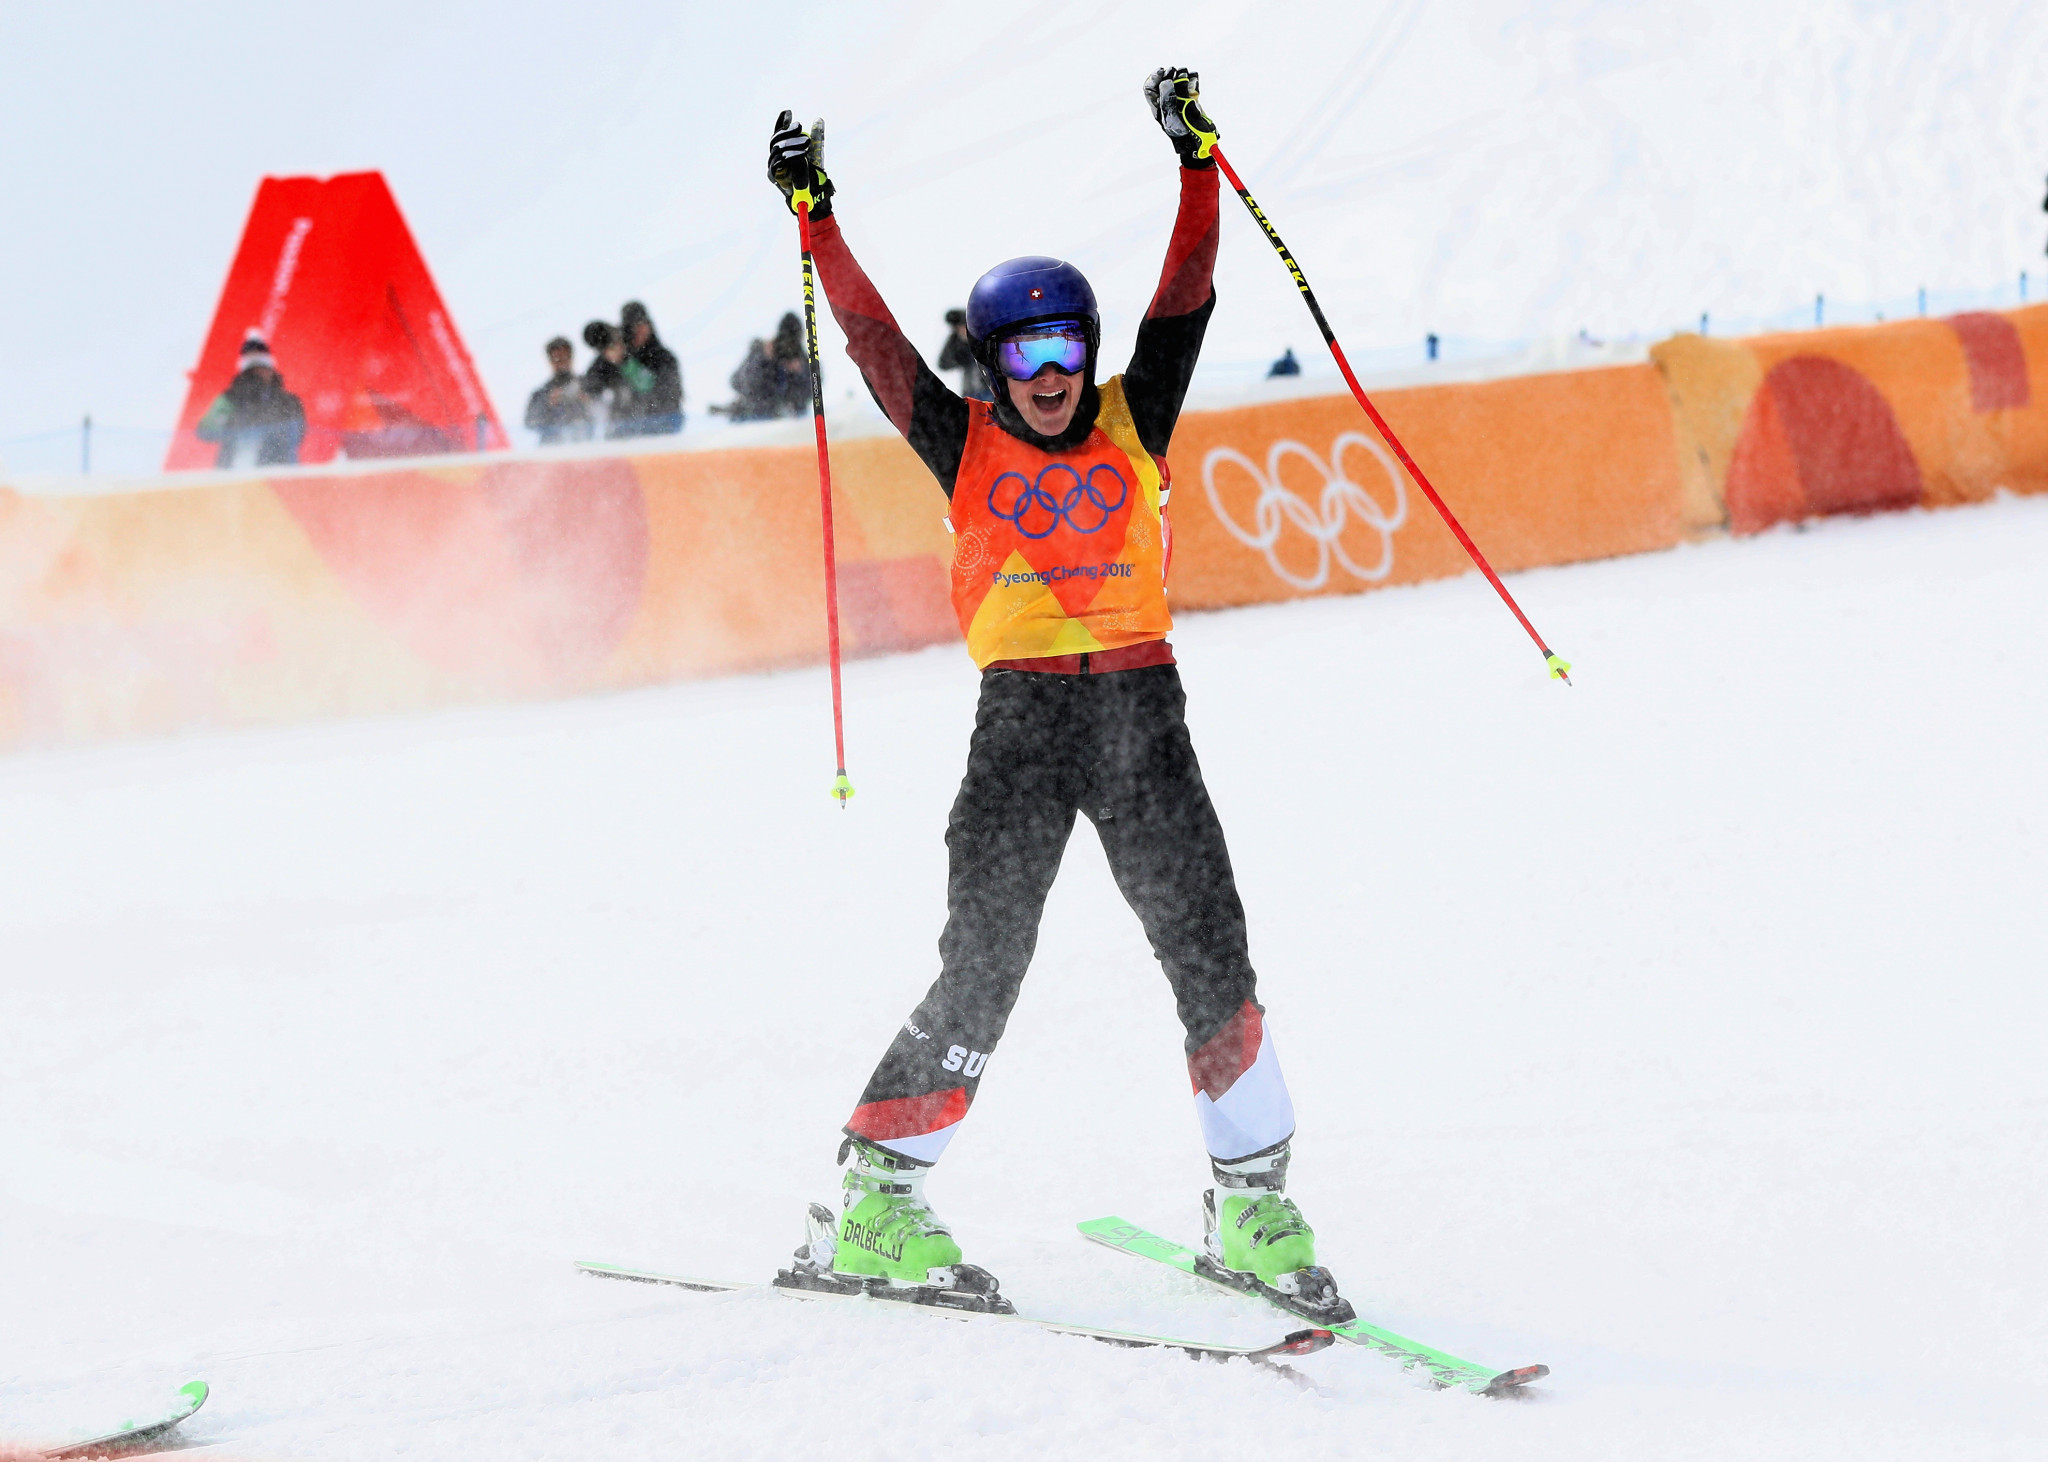 Olympic bronze medallist Smith leads women's Ski Cross World Cup qualifiers in Russia